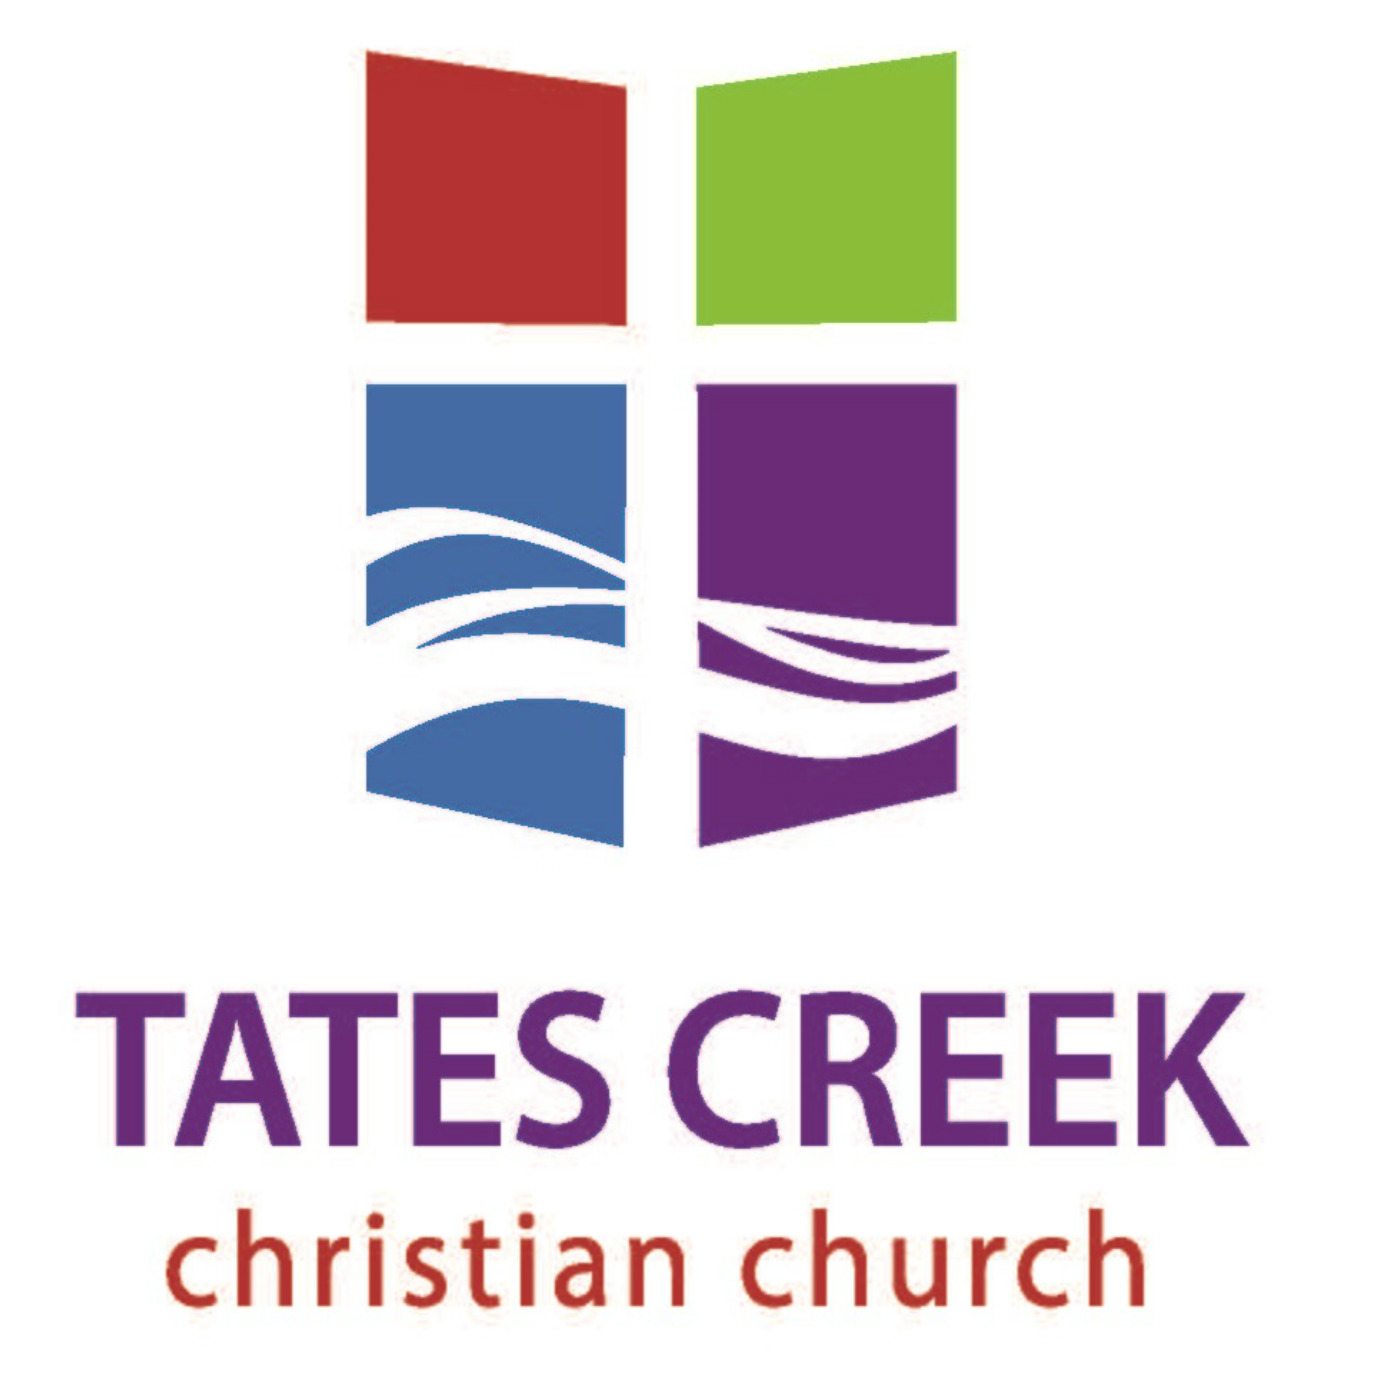 Tates Creek Christian Church